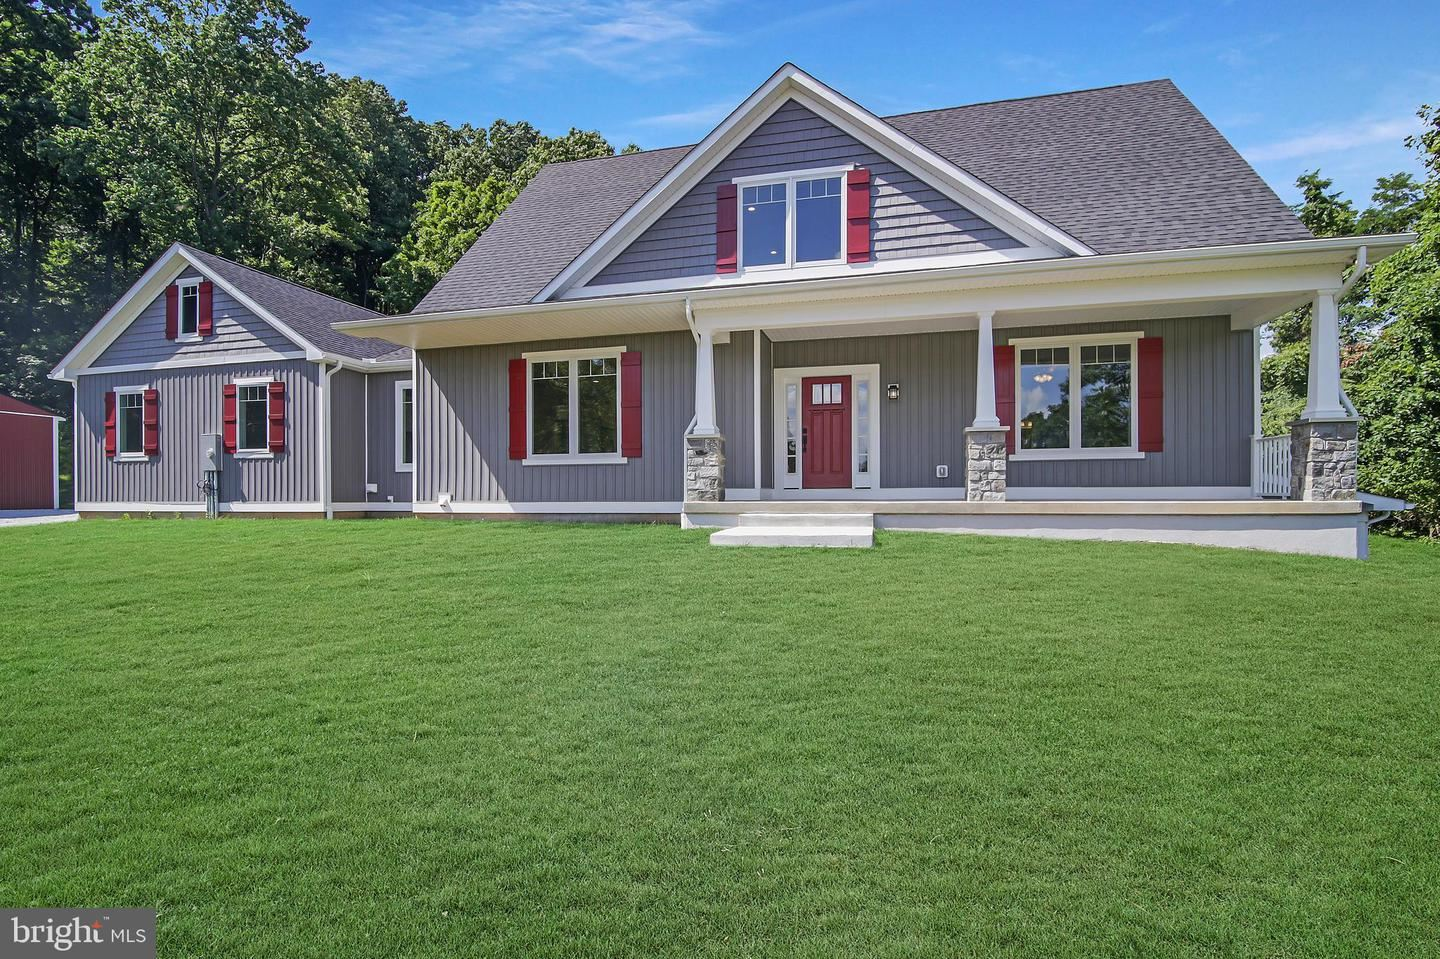 Photo of 2417 KAETZEL RD, KNOXVILLE, MD 21758 (MLS # MDWA173320)